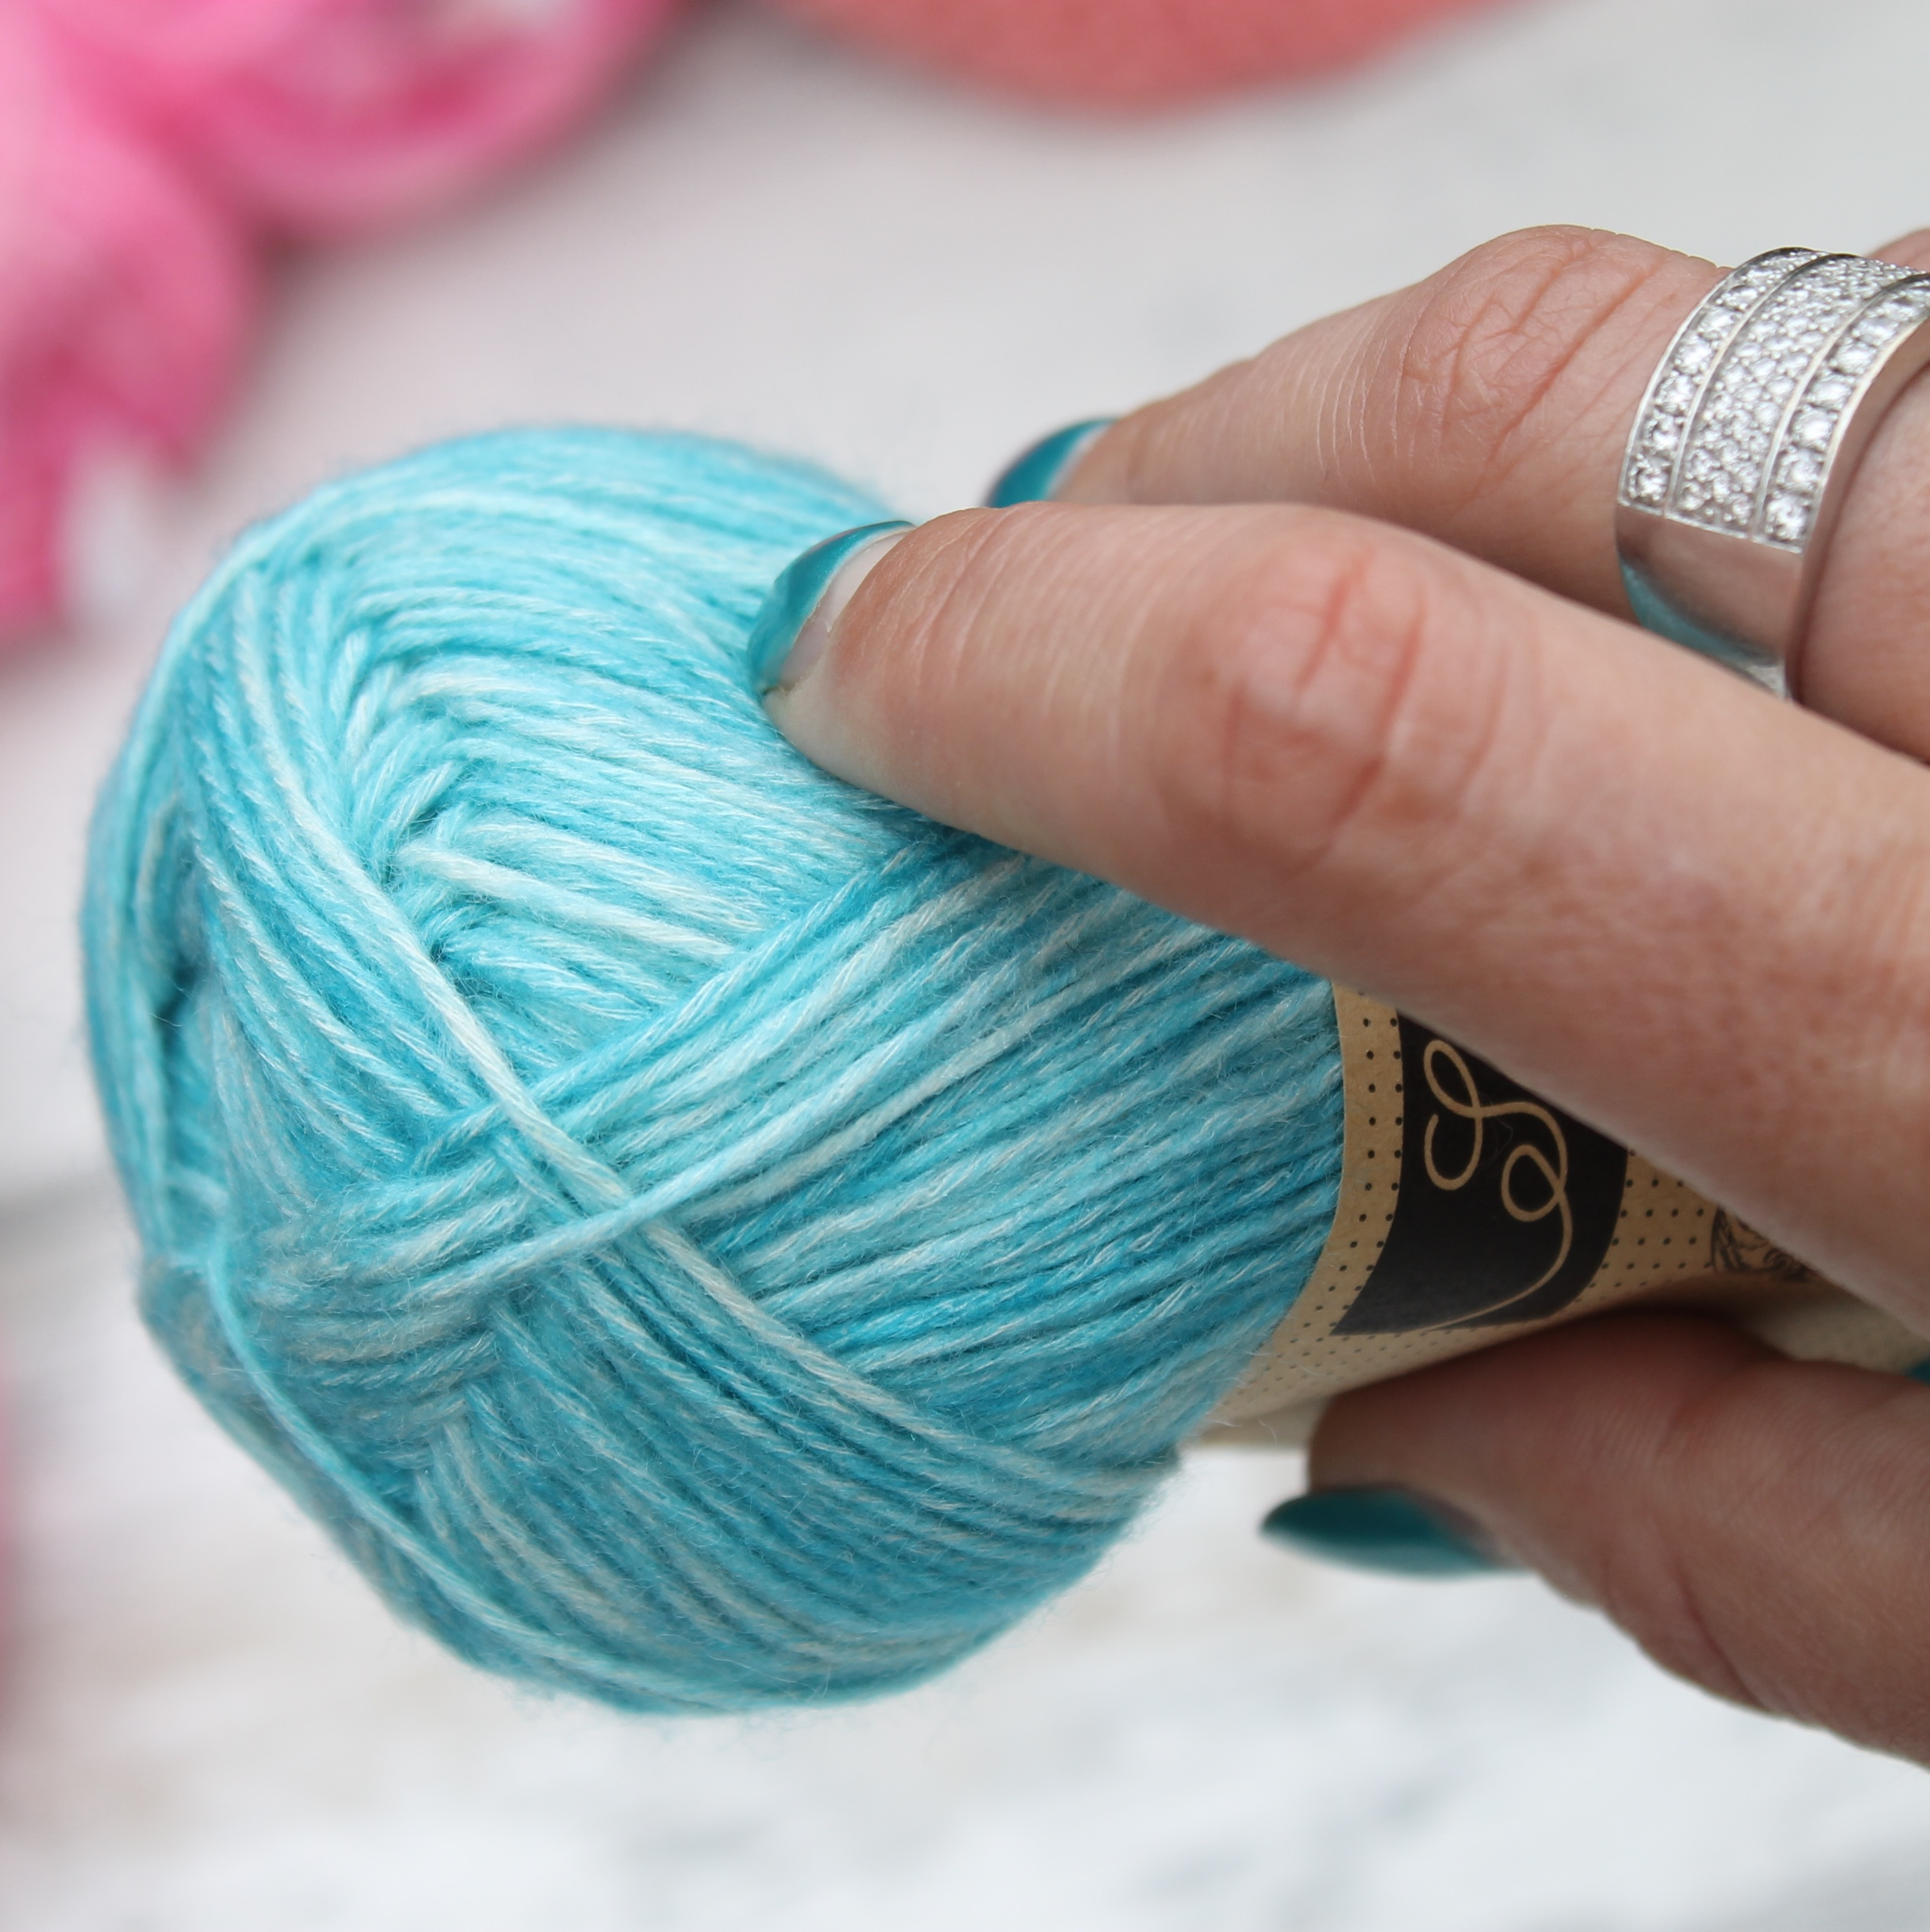 Scheepjes Spirit. Available from Wool Warehouse: http://bit.ly/woolwarehouse